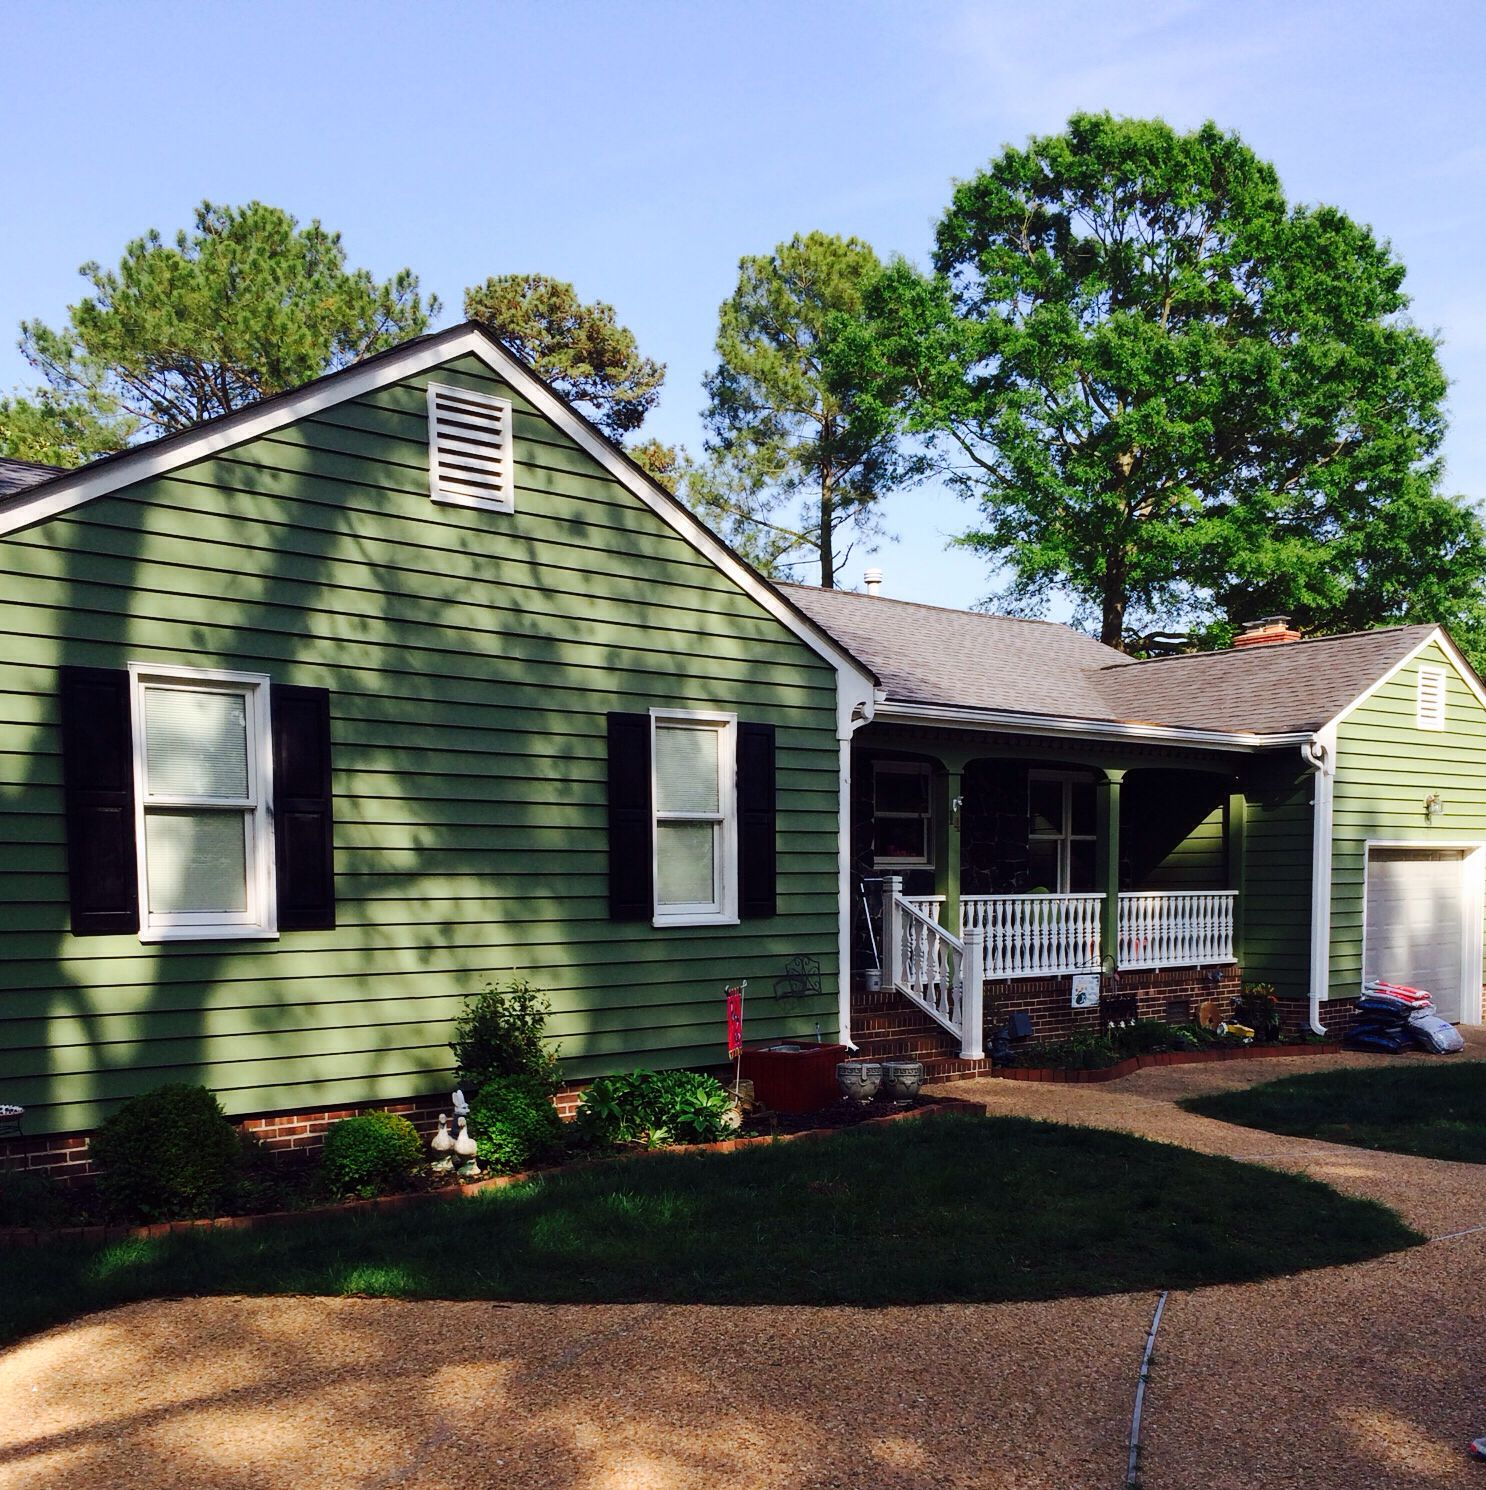 House painted with sherwin williams artichoke Green exterior house ...